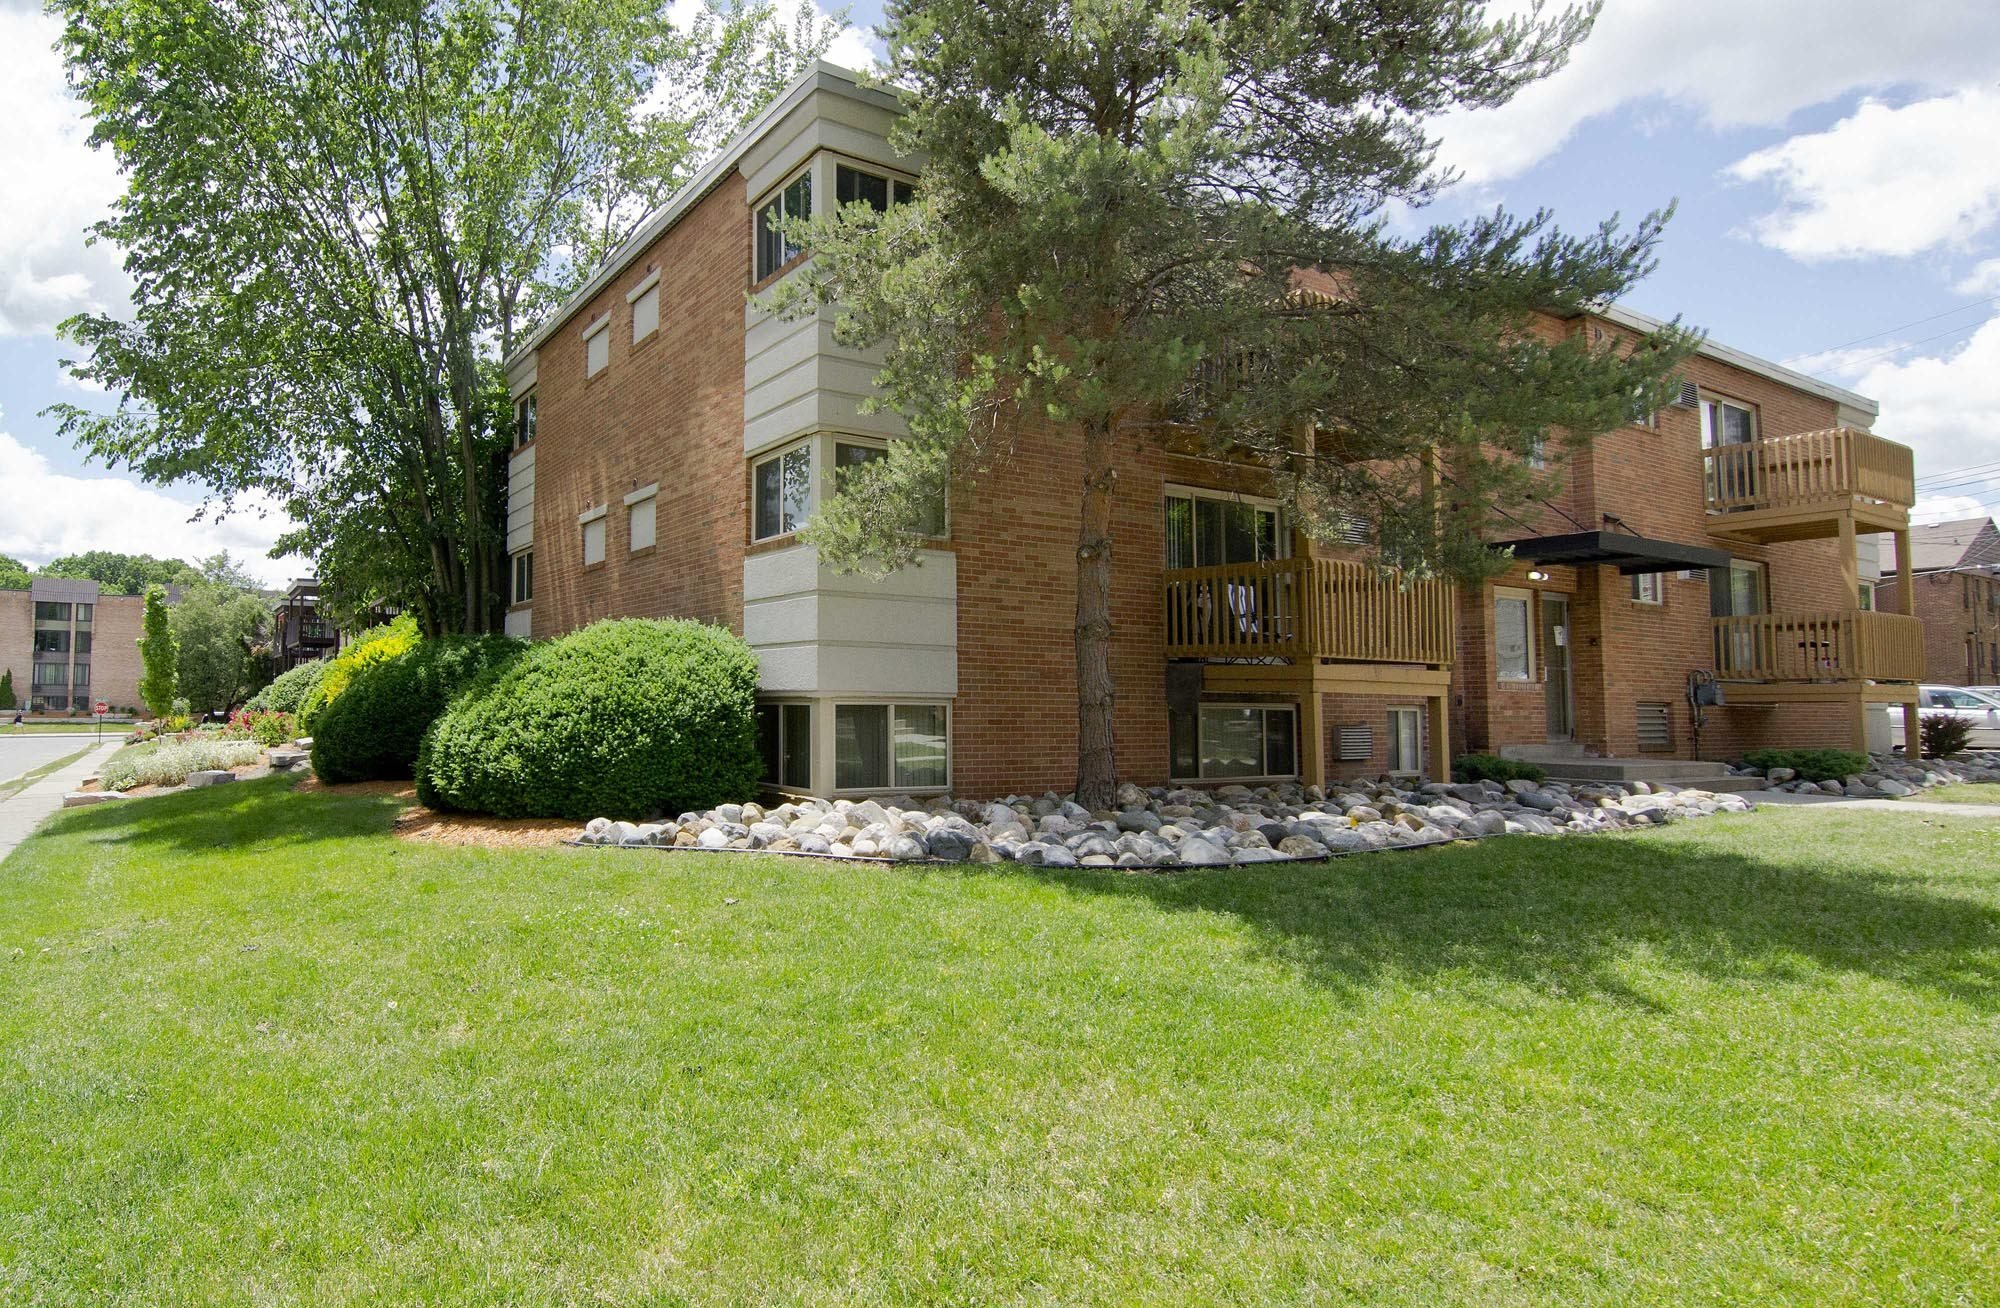 Apartments in East Lansing near Michigan State University | Cedar Street Apartments